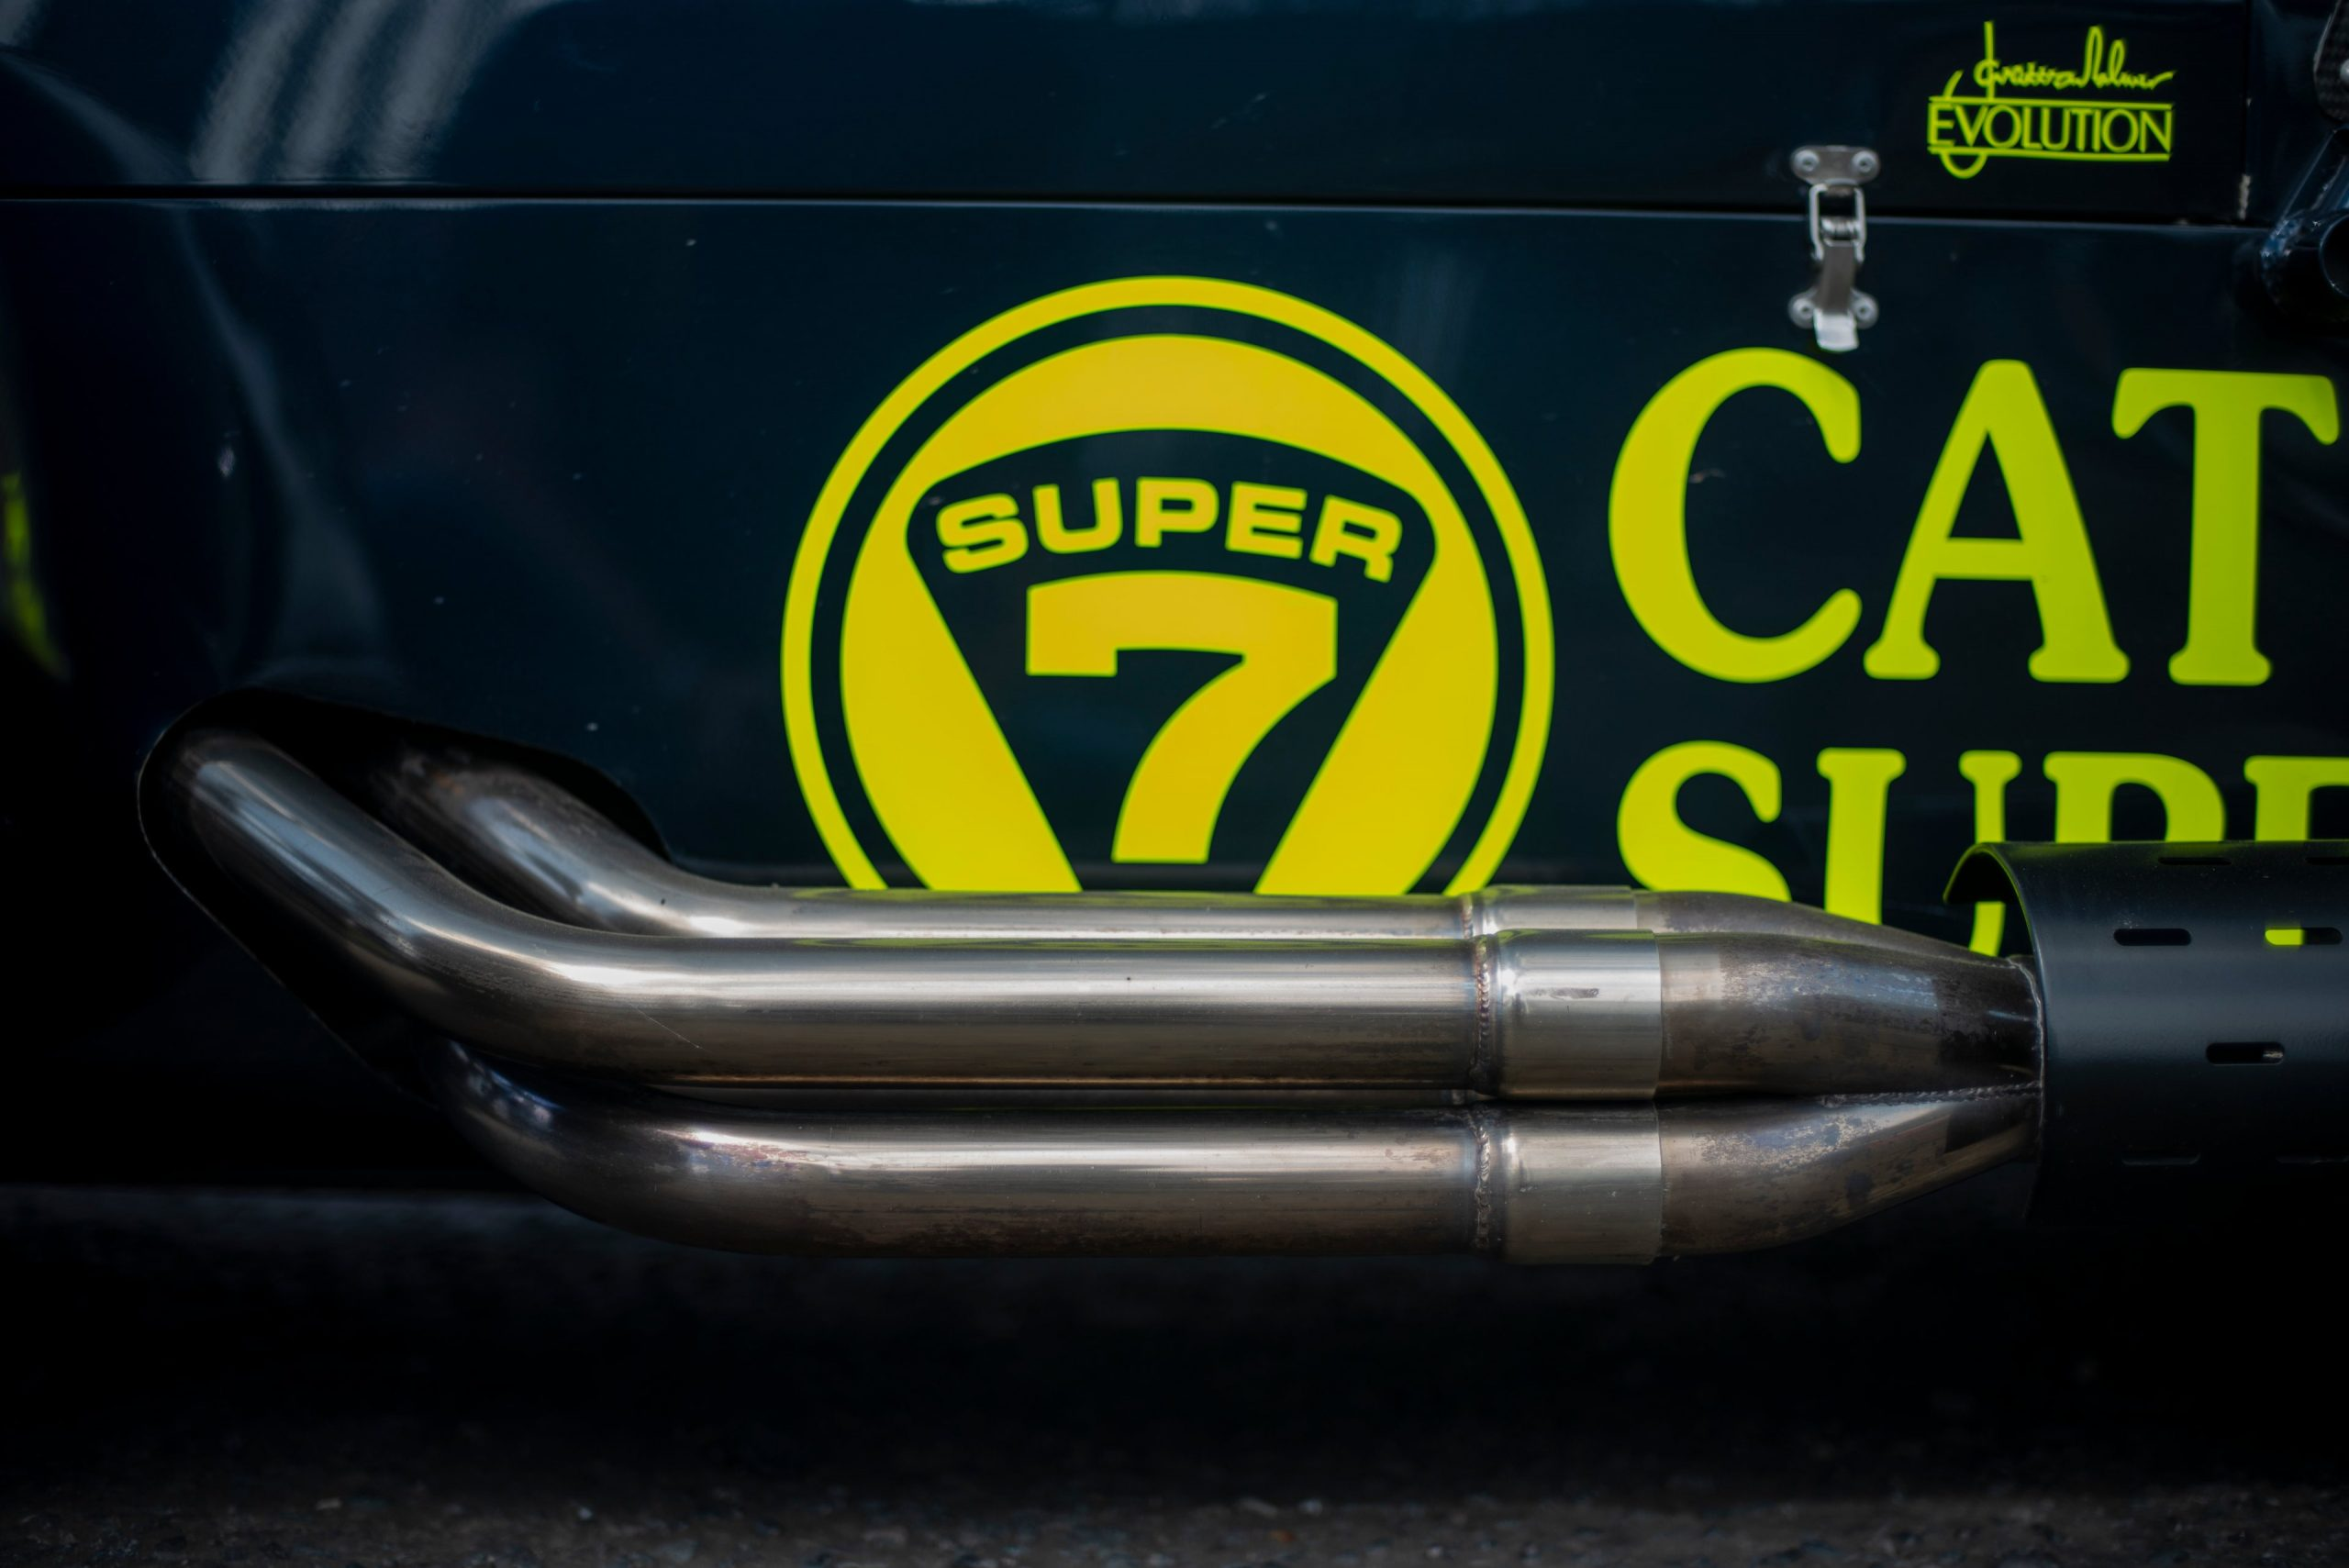 Caterham 7 JPE decal exhaust side